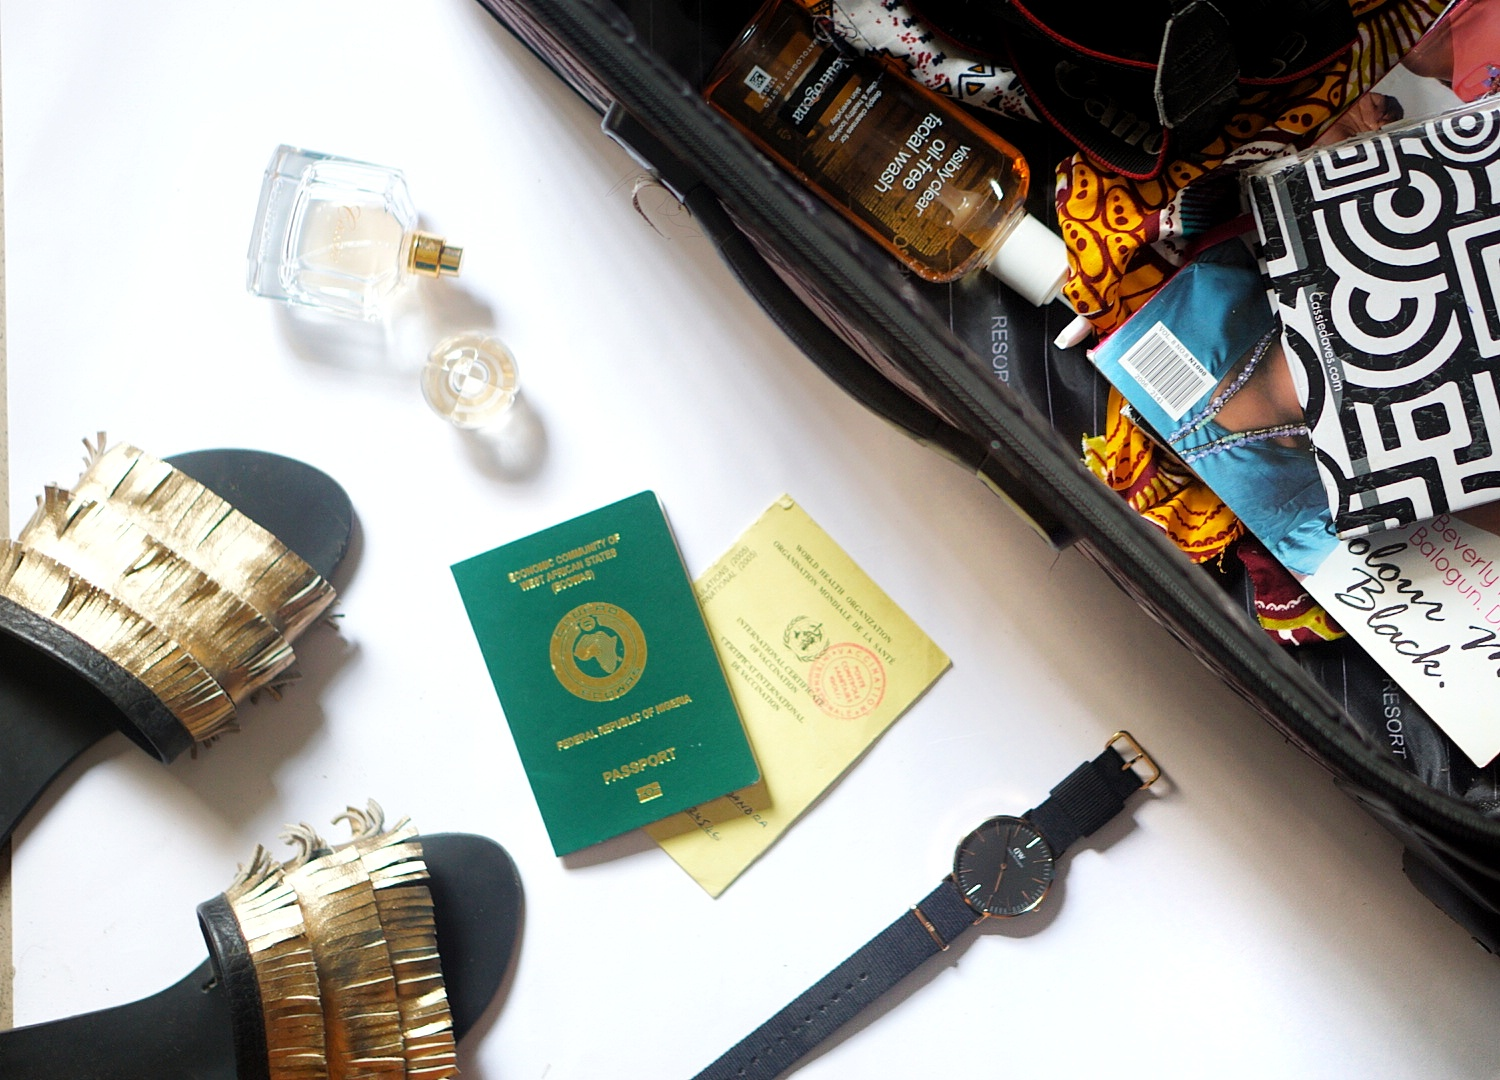 Flat lay image of travelling bag and other essentials for road trip to Ghana : passport and yellow card